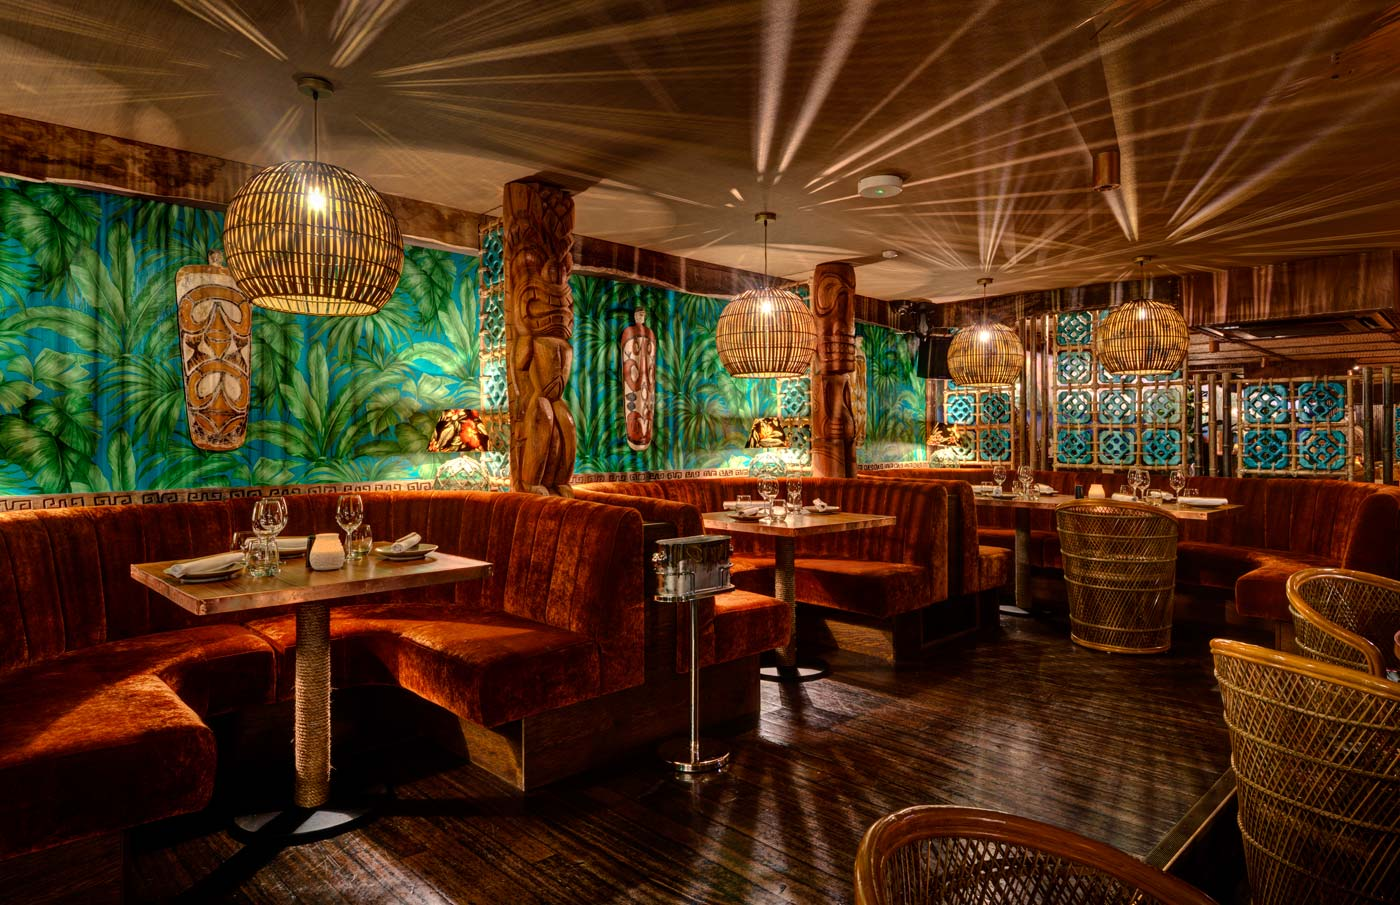 Pufferfish at Mahiki Kensington a Full-Blooded Polynesian Culinary Experience 5